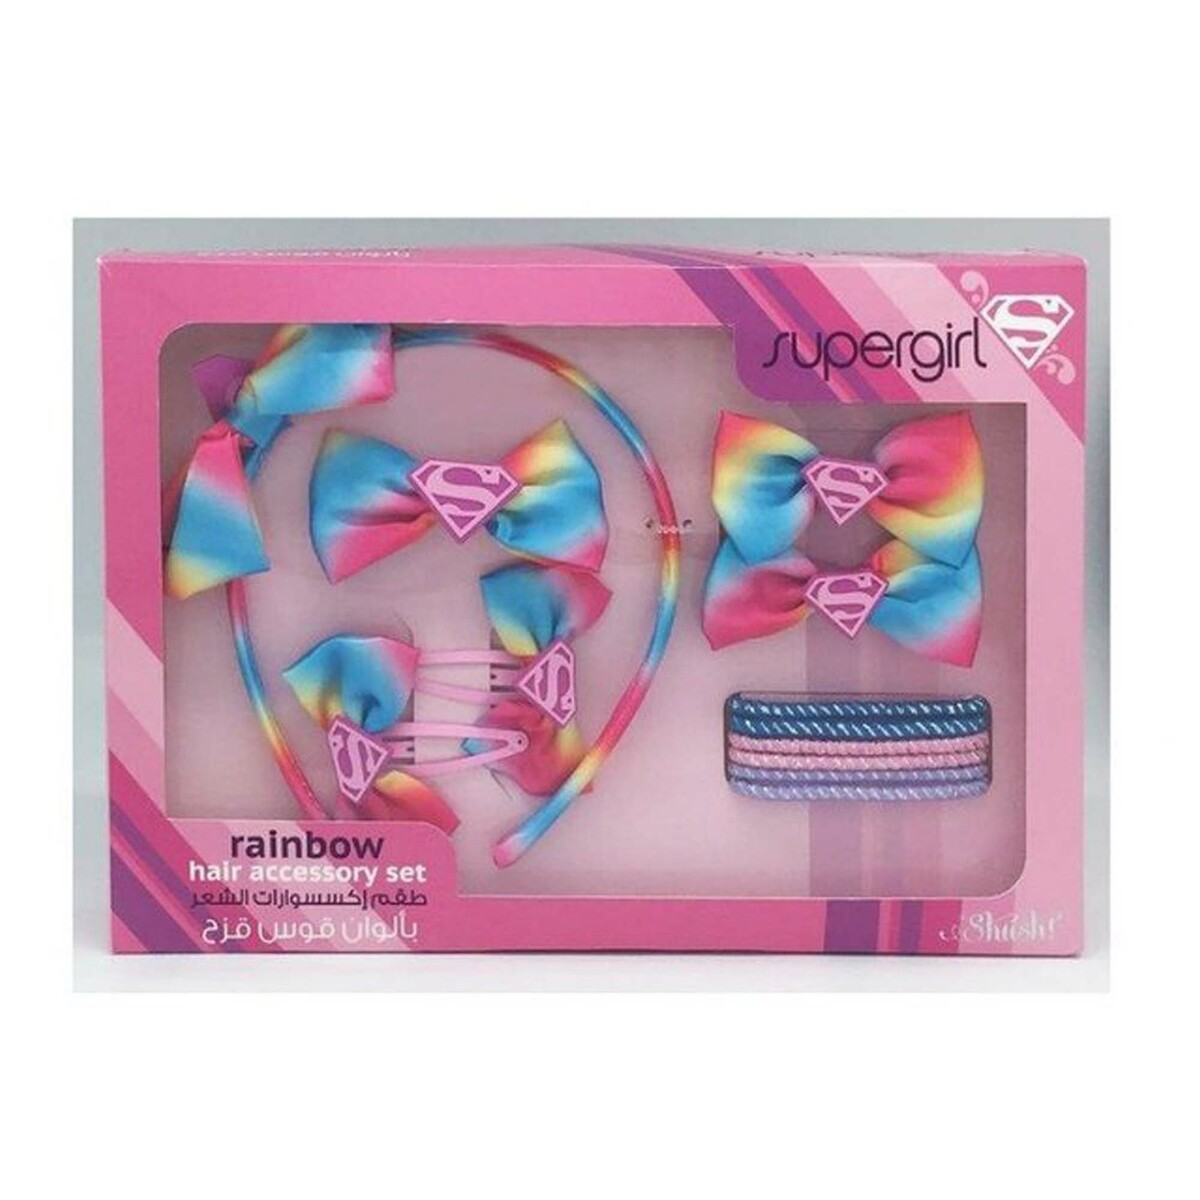 Supergirl Rainbow Hair Accessory Set 46894